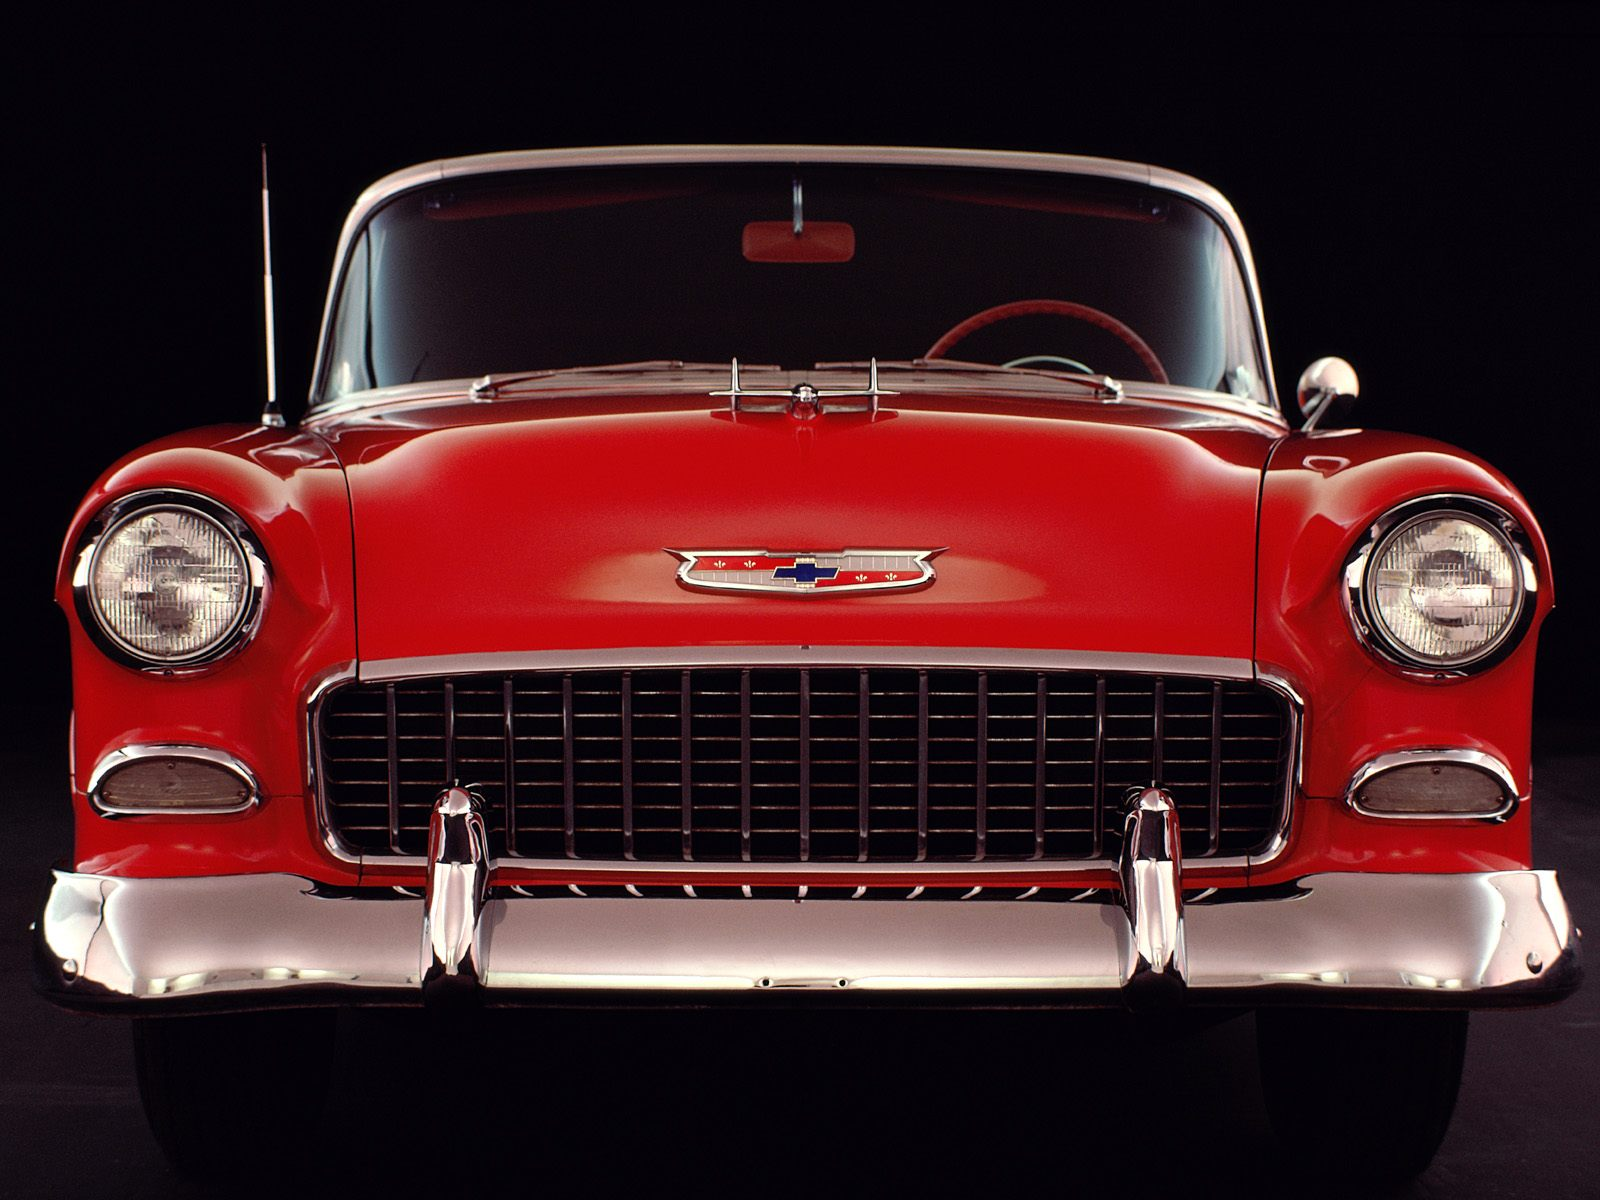 An American Classic 1955 Chevrolet Bel Air  Wallpaper Image featuring